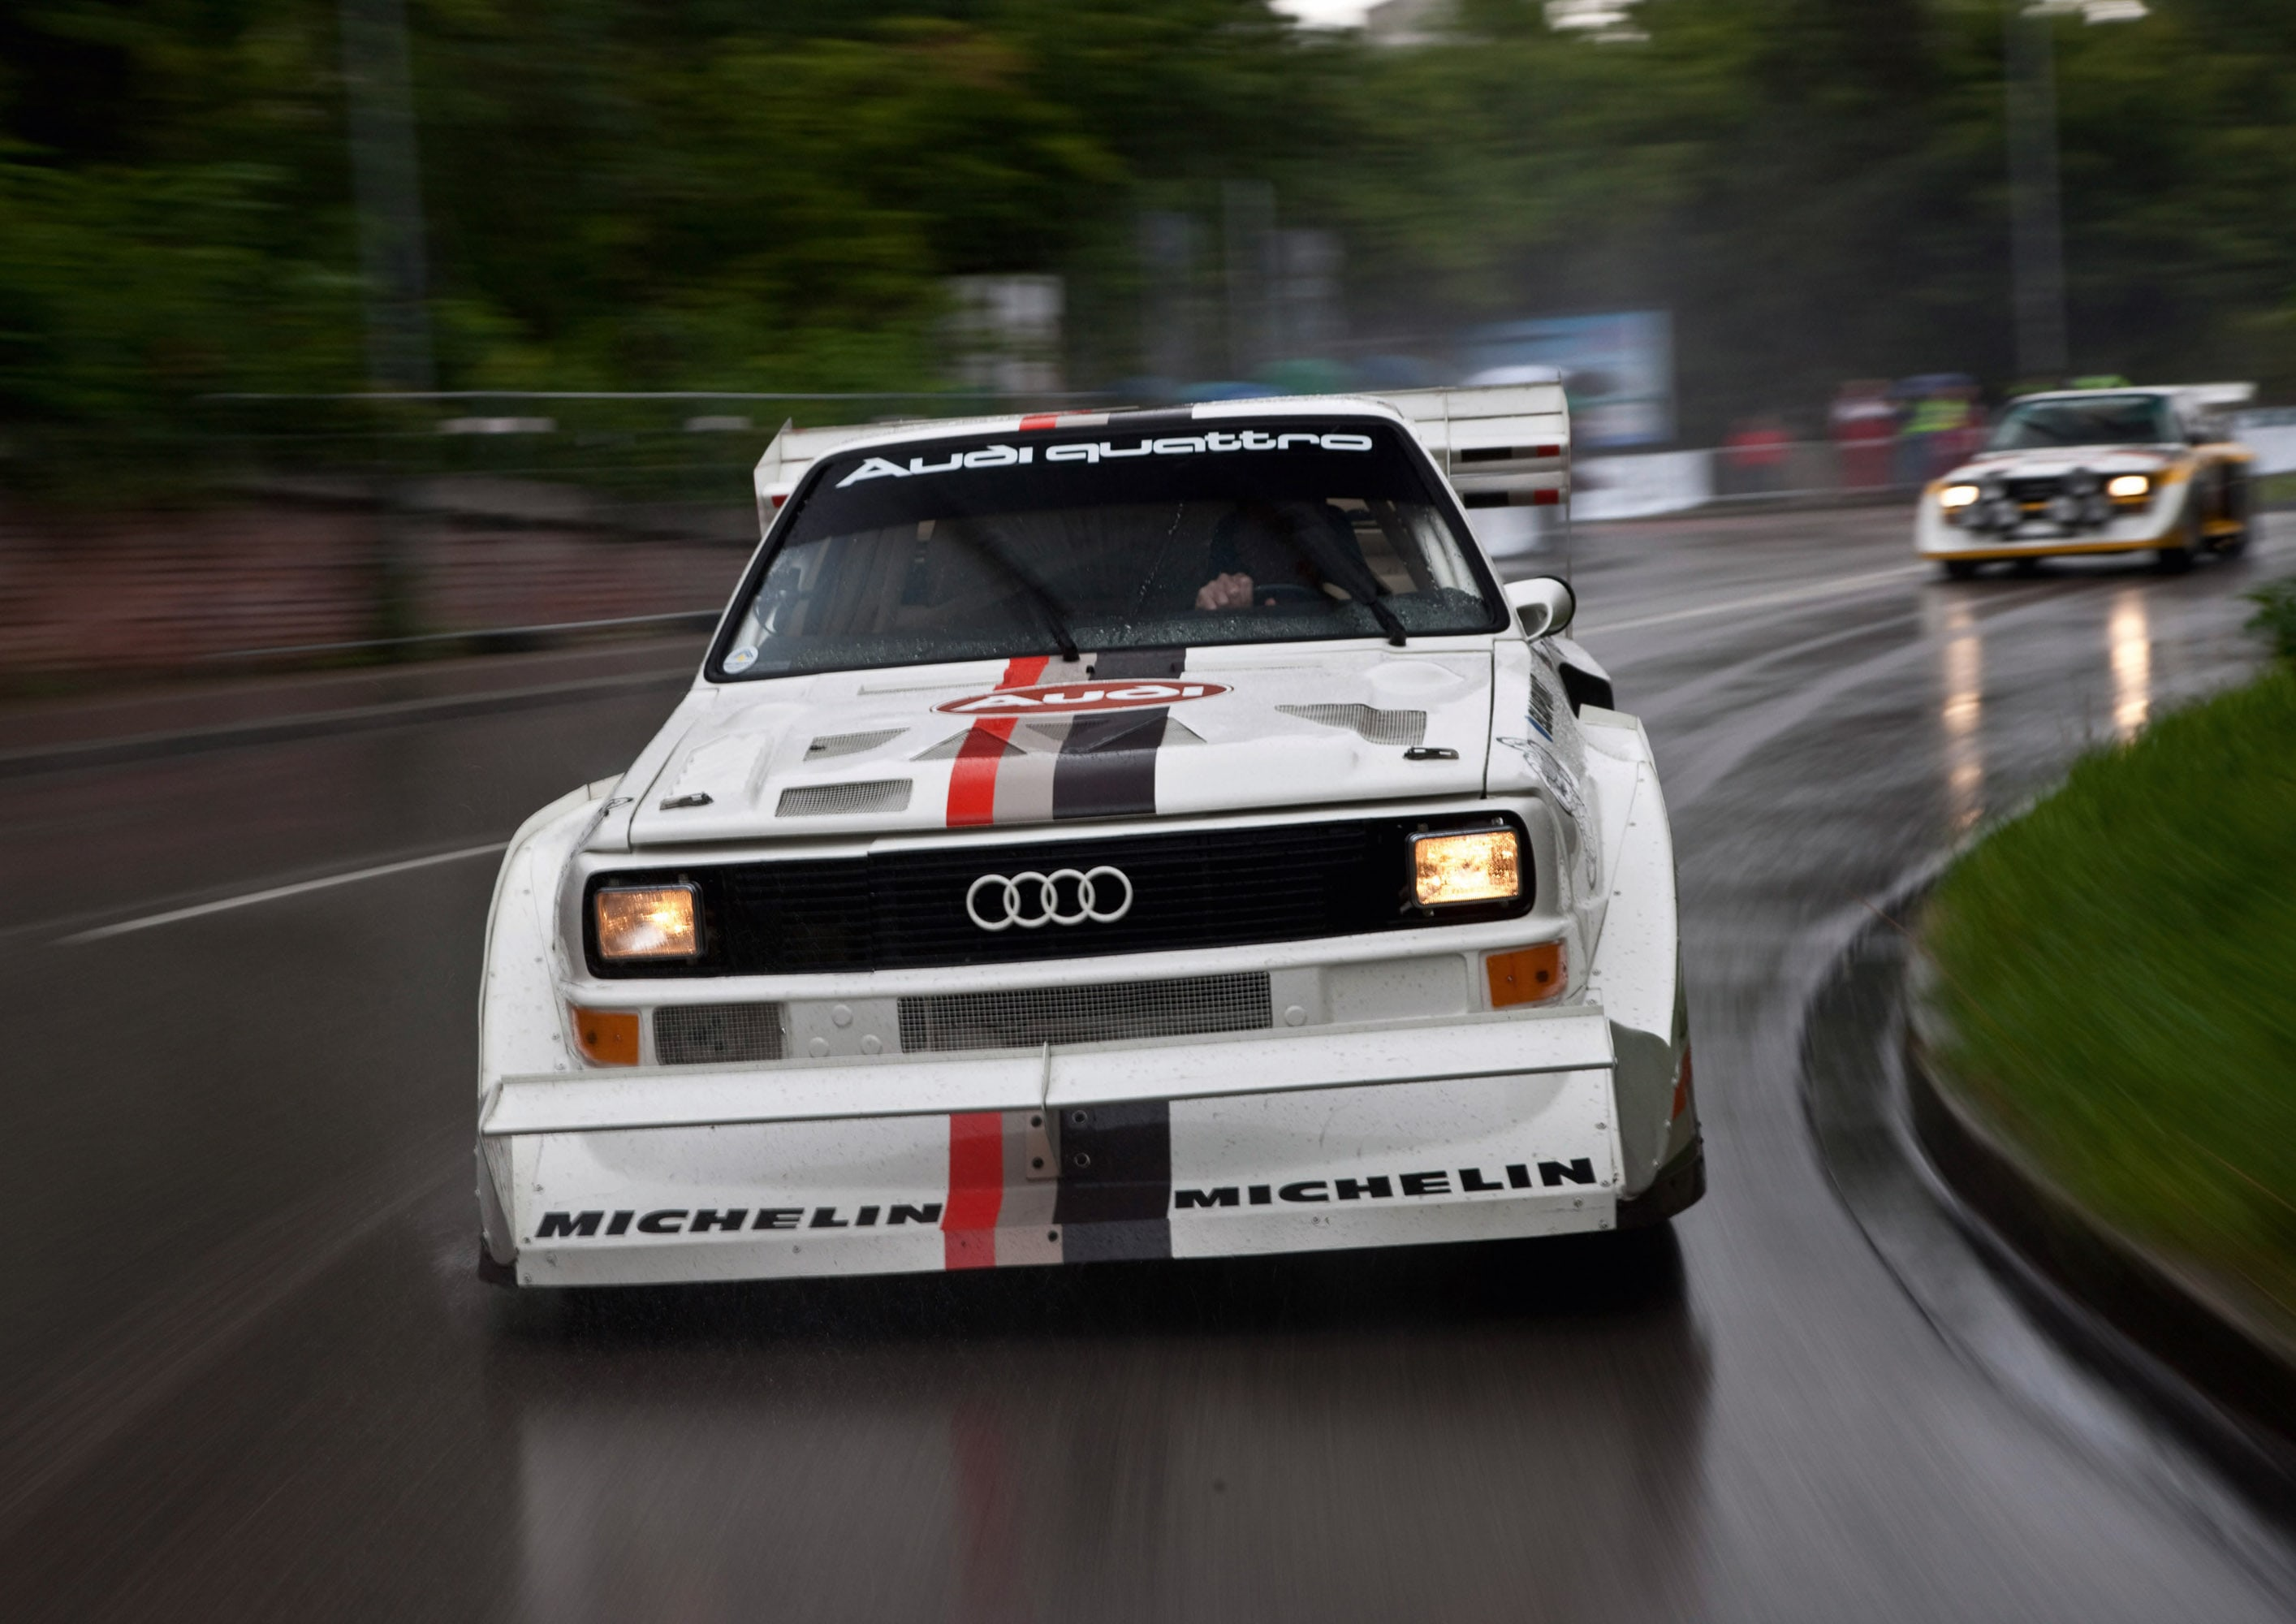 Audi Sport Quattro S1 Wallpapers hd